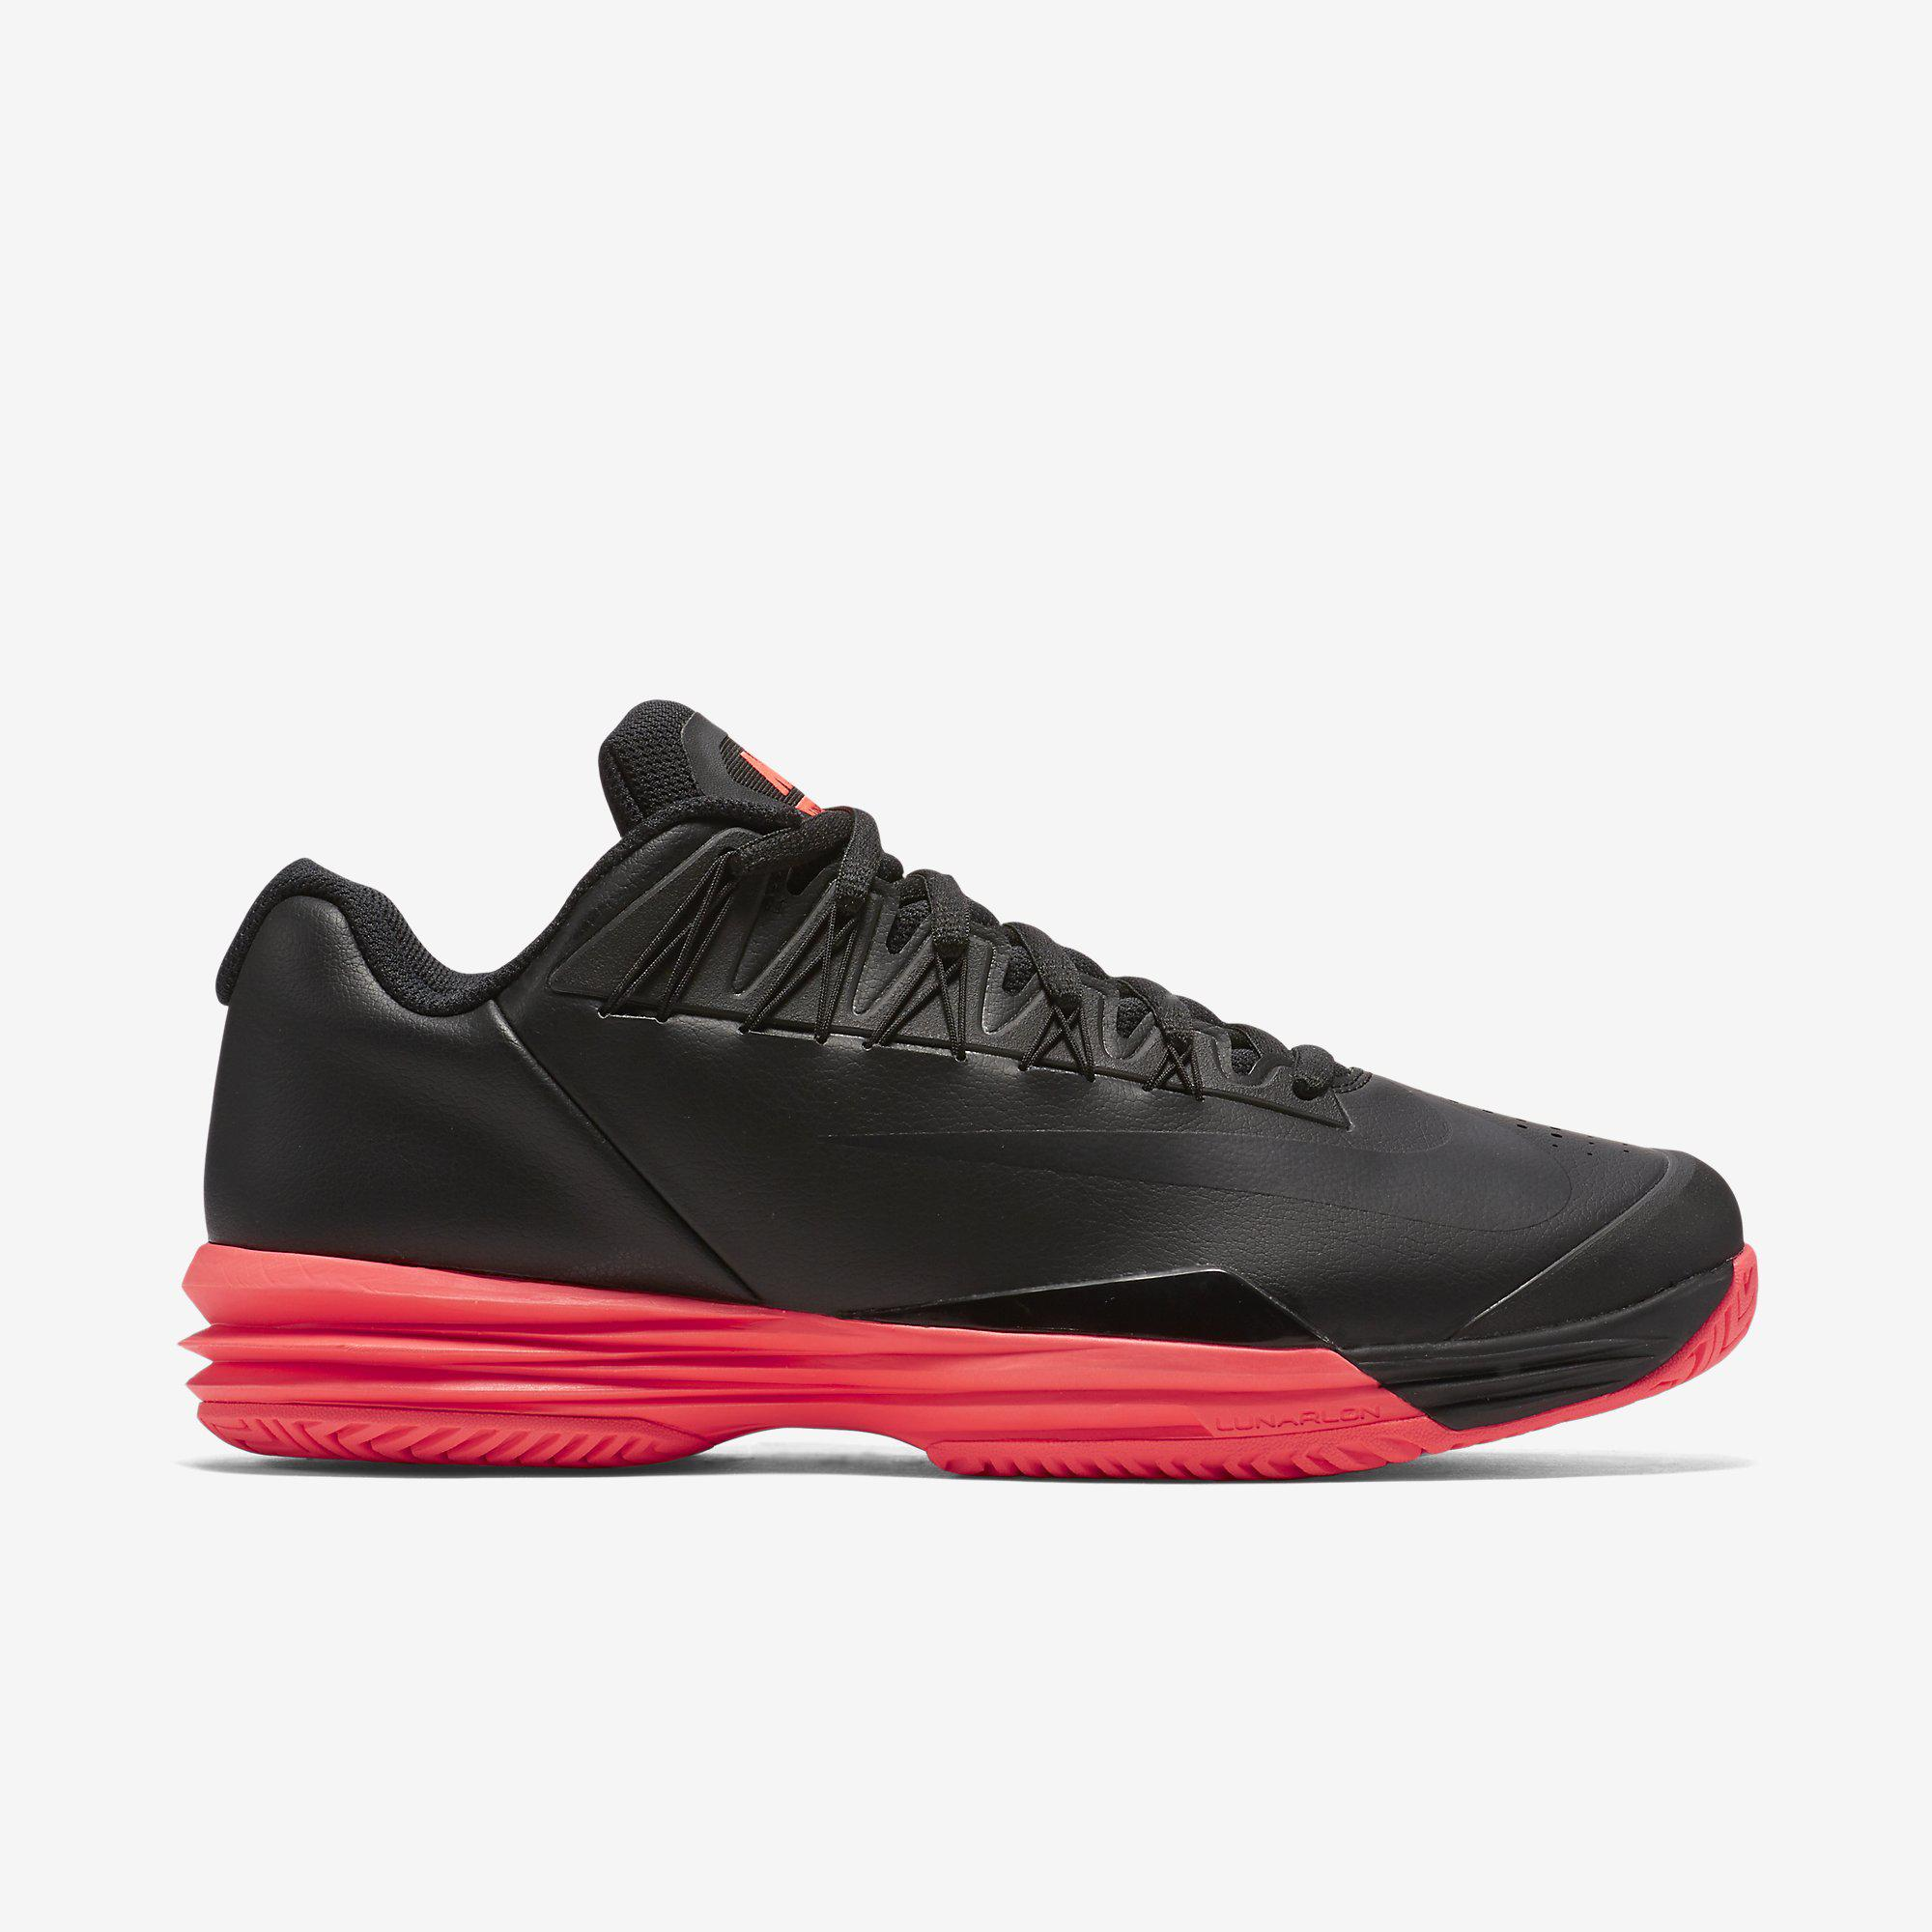 detailed look 17da8 aa062 Nike Mens Lunar Ballistec 1.5 Tennis Shoes - BlackHot Lava ...